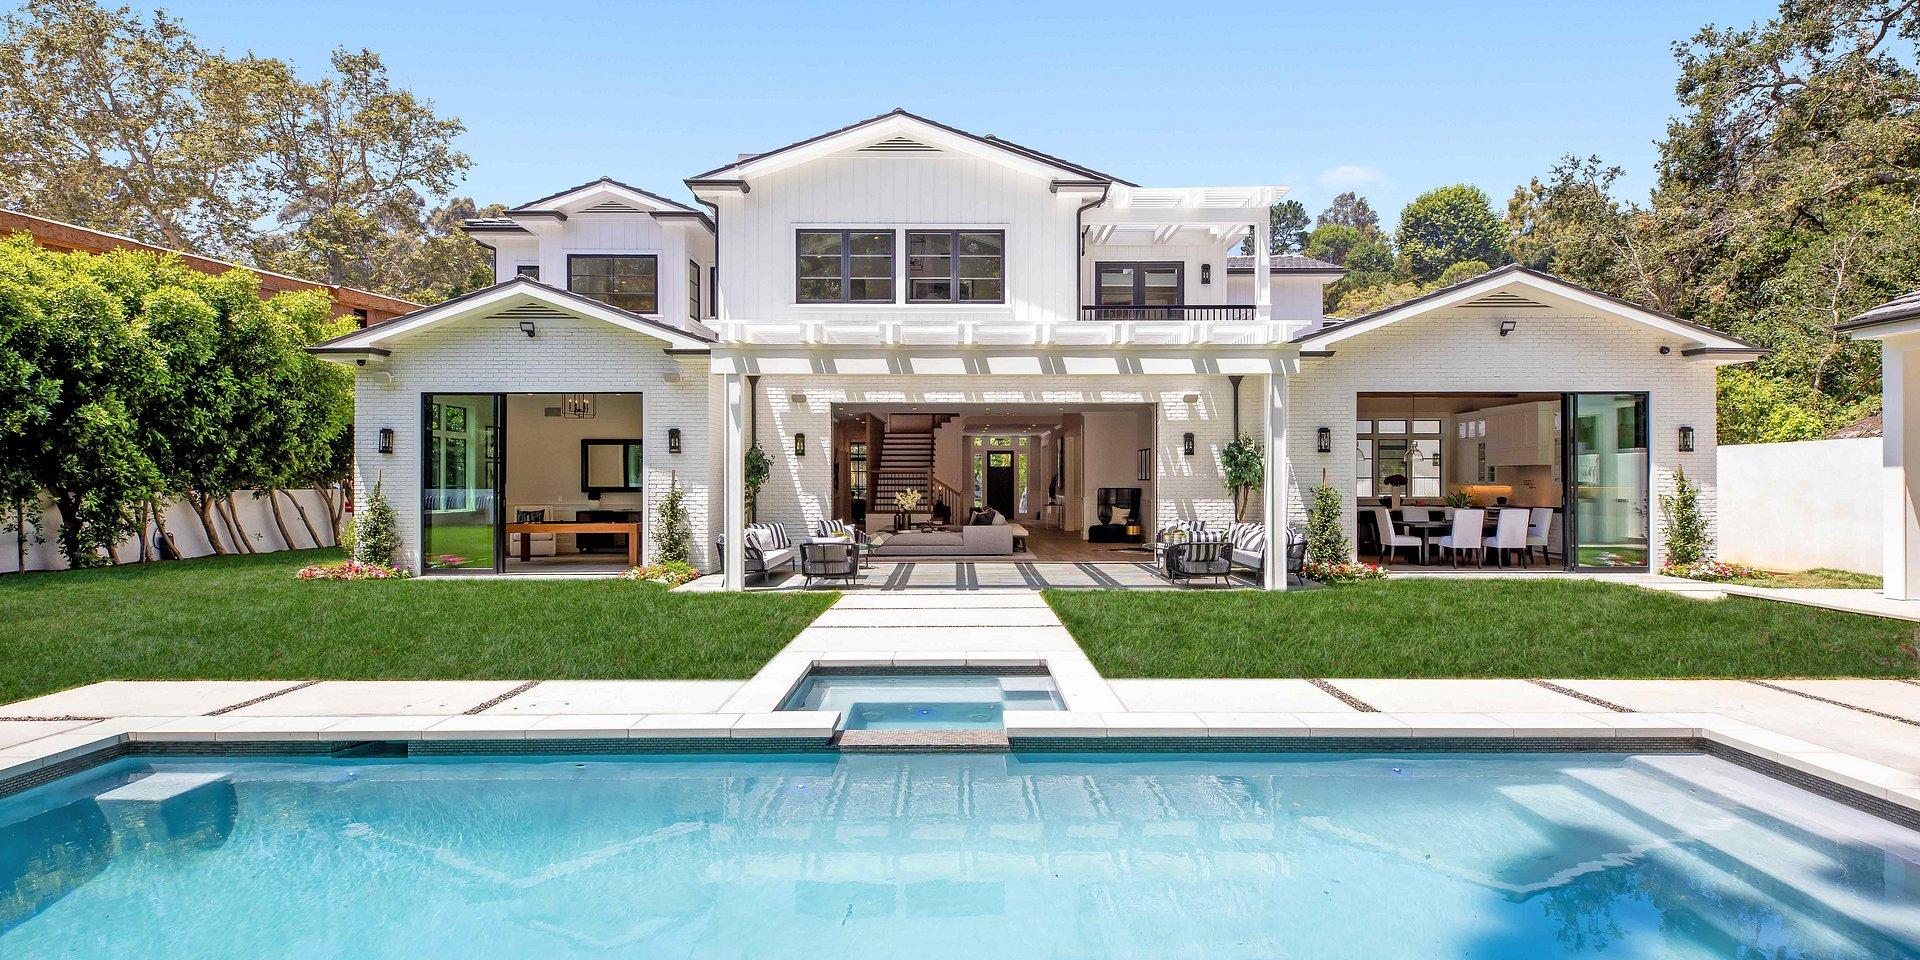 Coldwell Banker Residential Brokerage Lists a New Bel Air Property for $9.995 Million